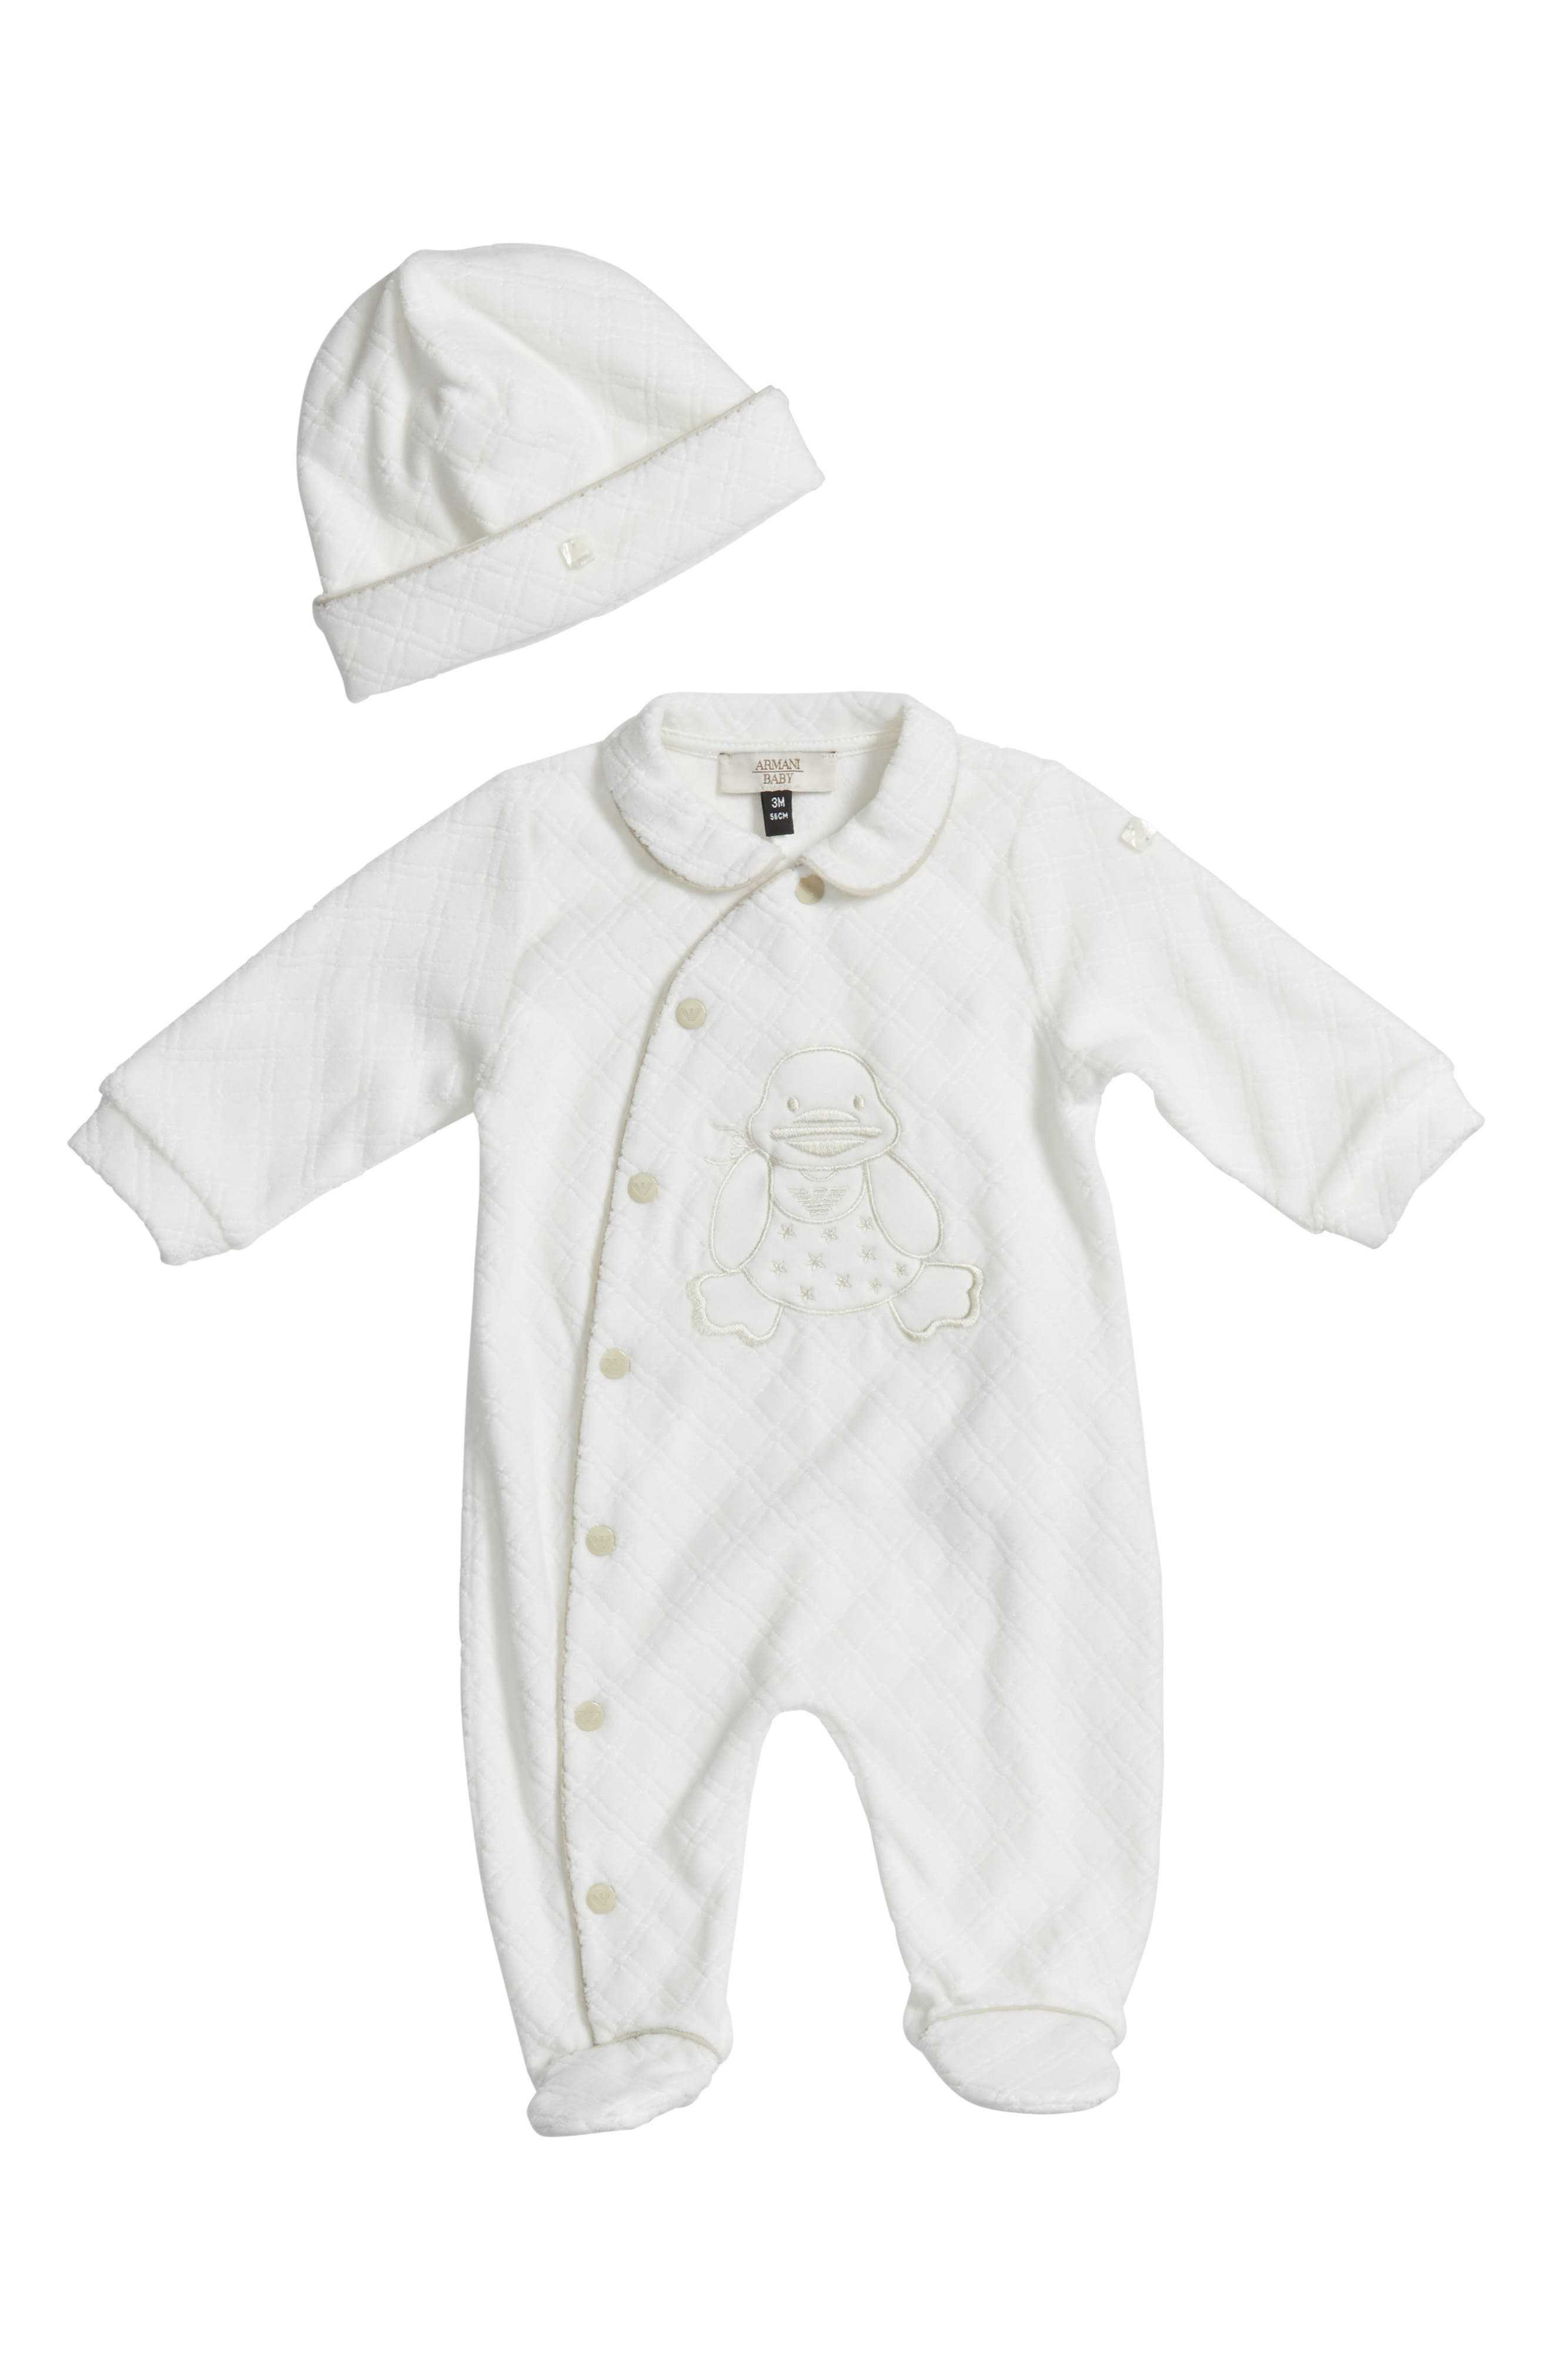 Alternate Image 1 Selected - Armani Junior Velour Footie & Beanie Set (Baby)